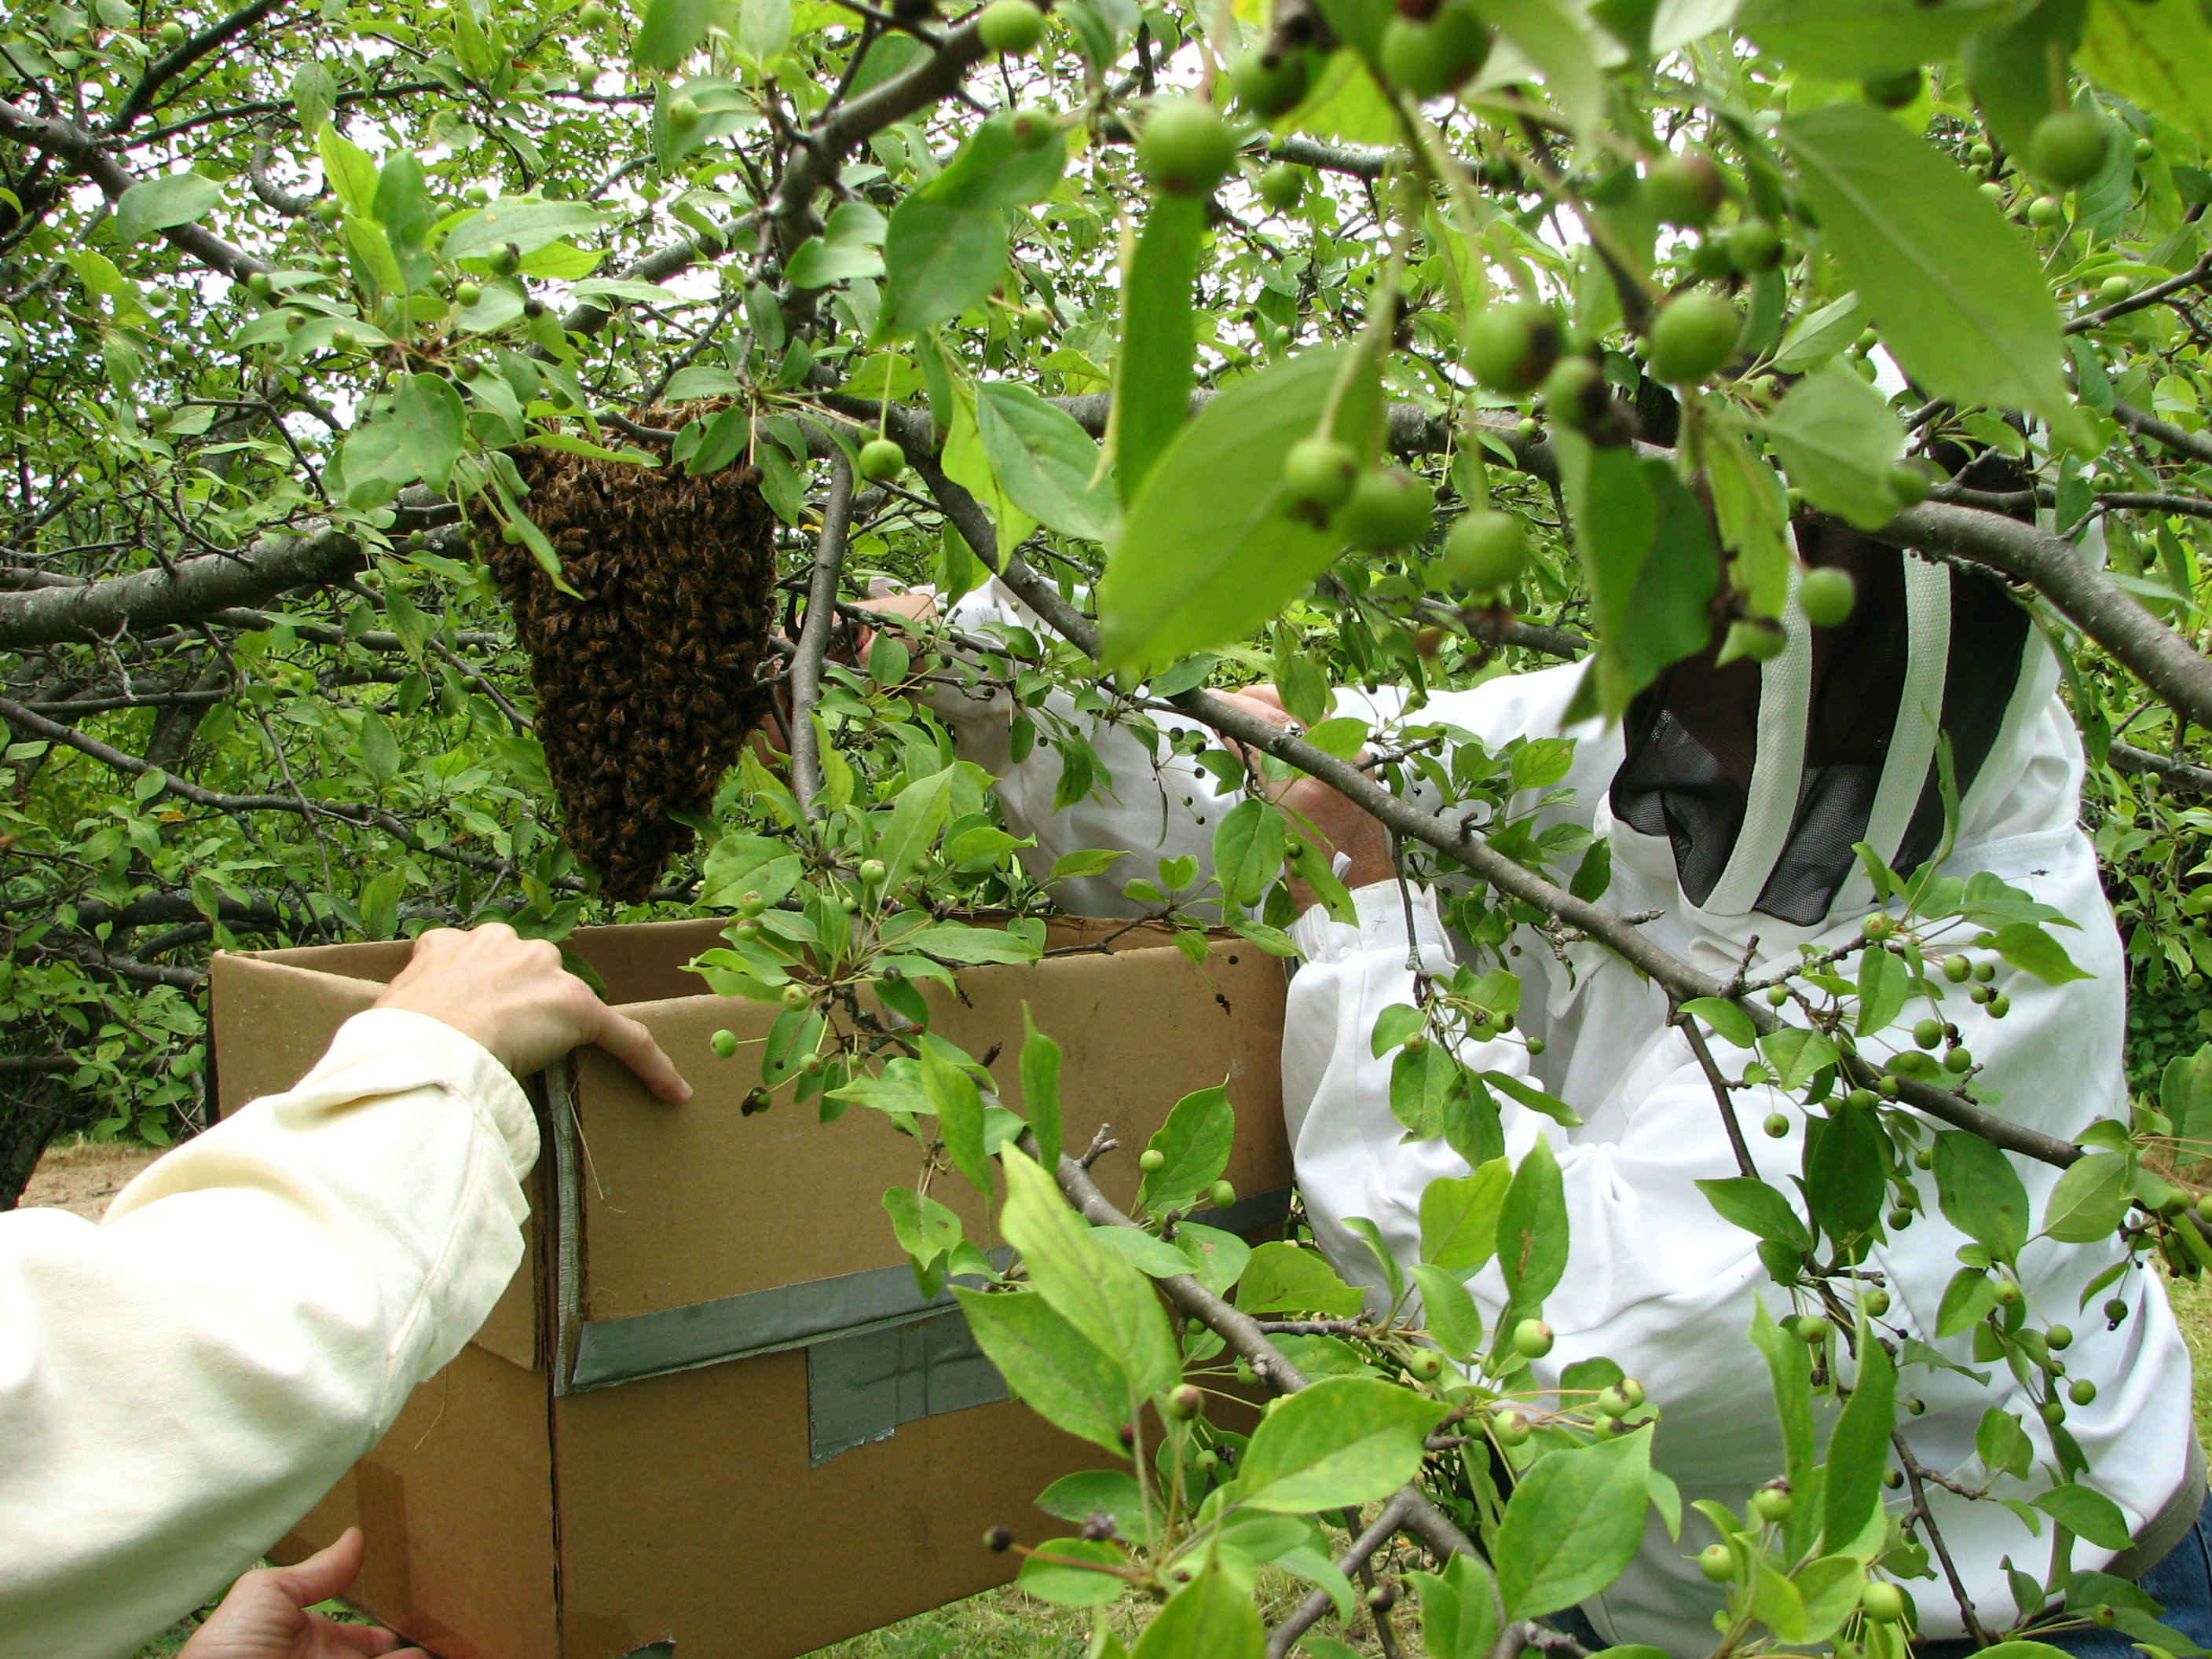 The Swarming of honey bees…